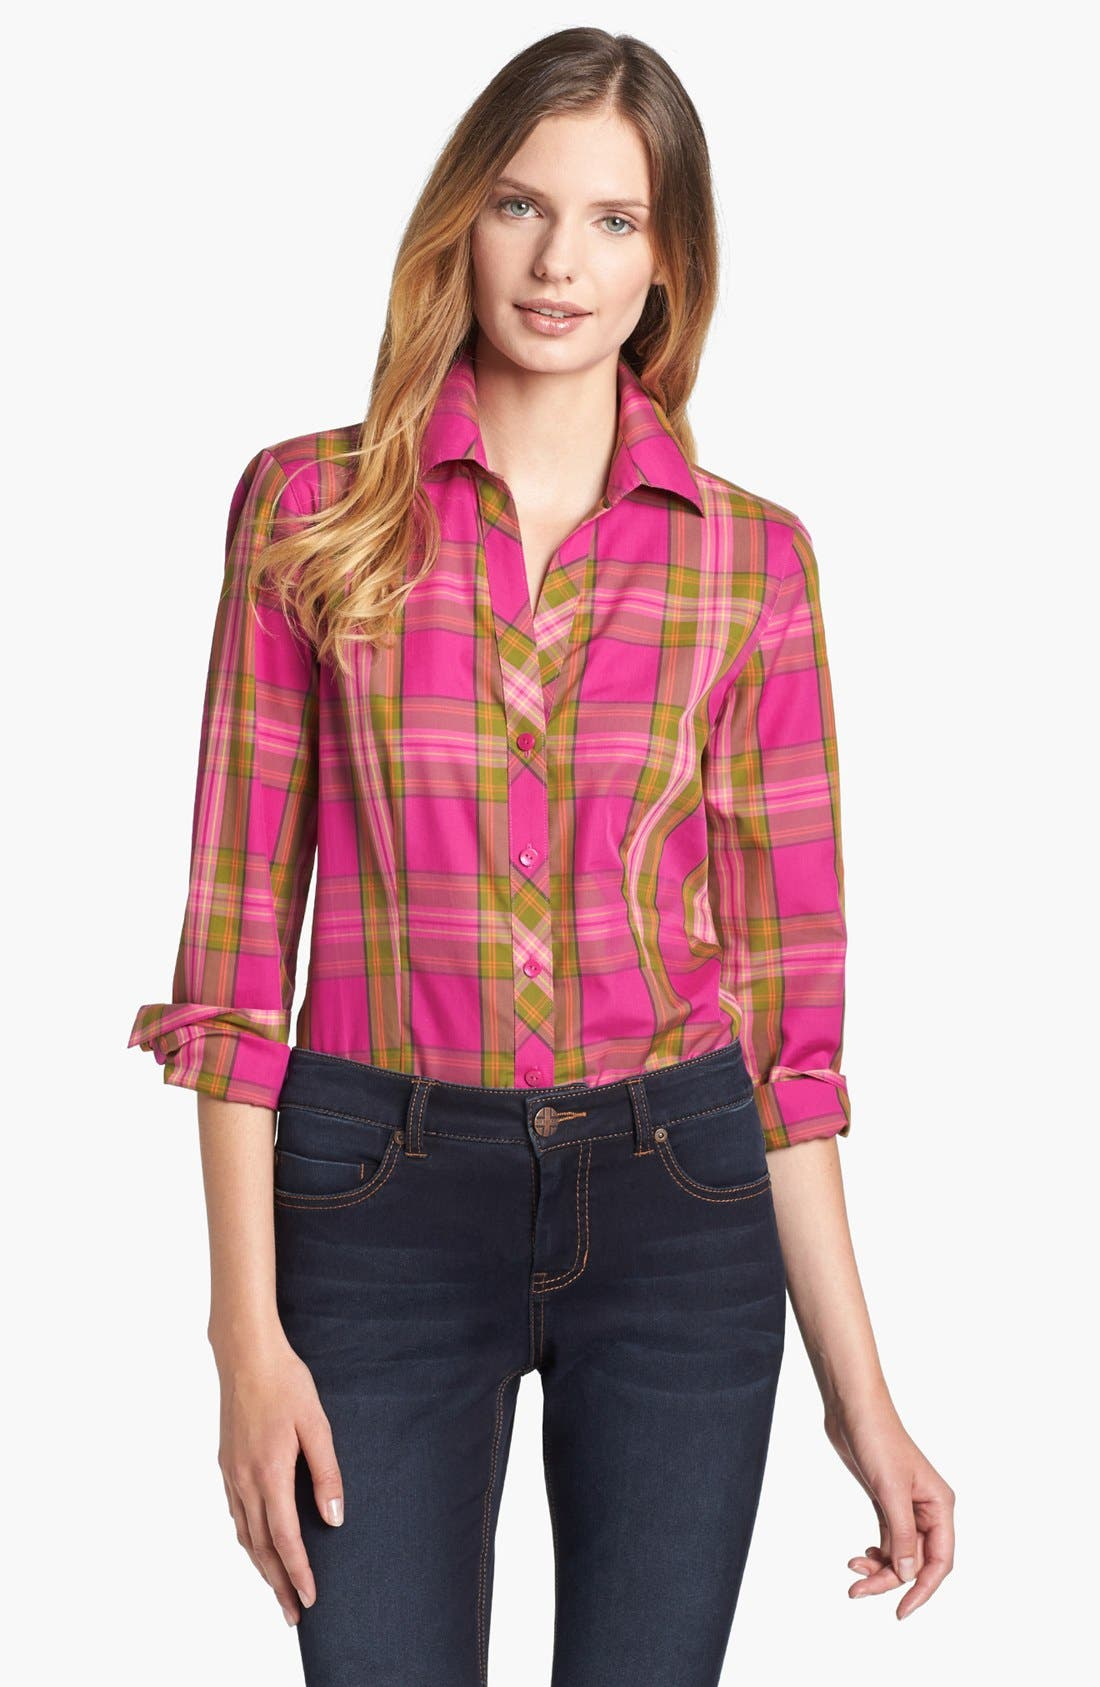 Alternate Image 1 Selected - Foxcroft 'Autumn Tartan' Woven Cotton Shirt (Petite)